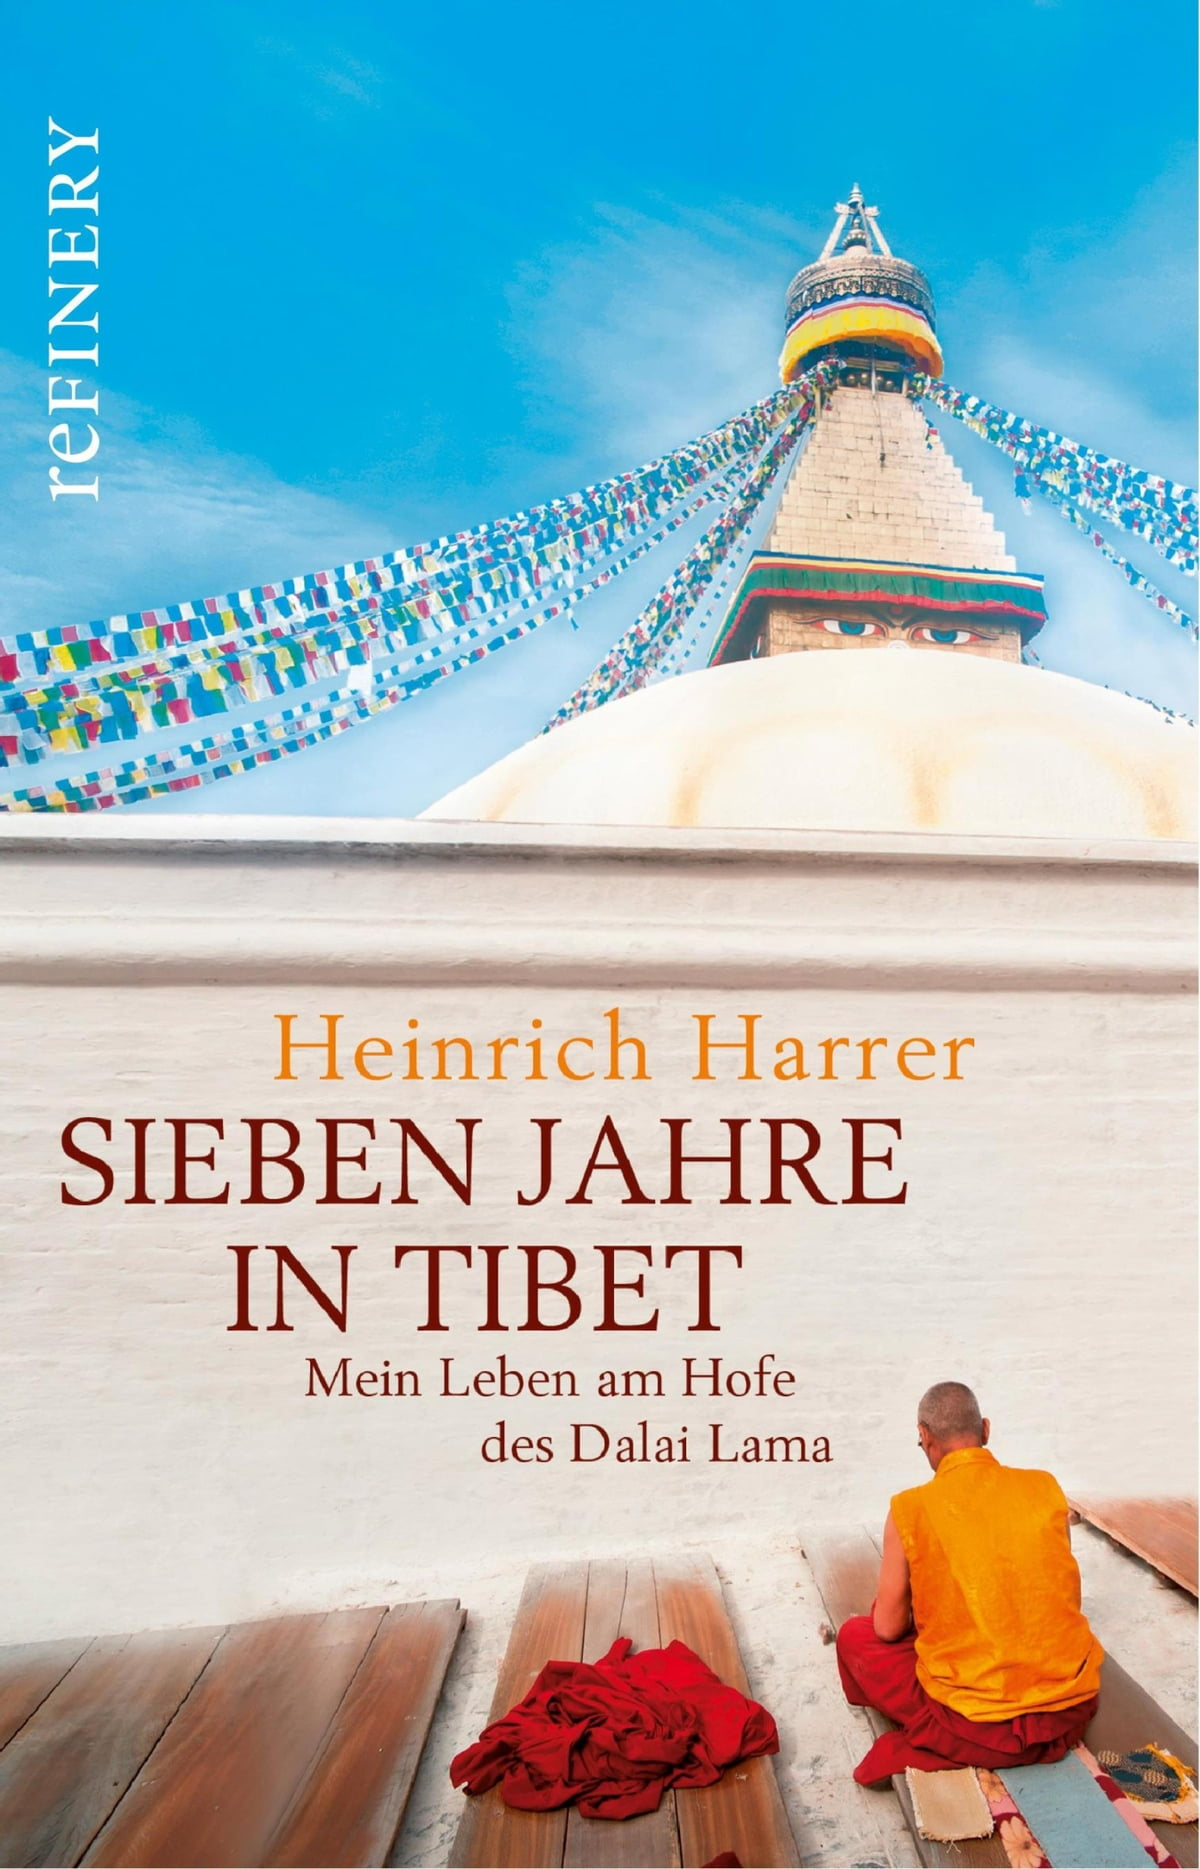 the concept of impermanence in tibetan diaries by geoff childs By geoff childs an immensely readable and genuinely moving account of tibetan lives and religion childs provides mutually illuminating narratives of the present and past that reveal an intimate portrayal of a tibetan community in the nepalese highlands--david germano, university of virginia.